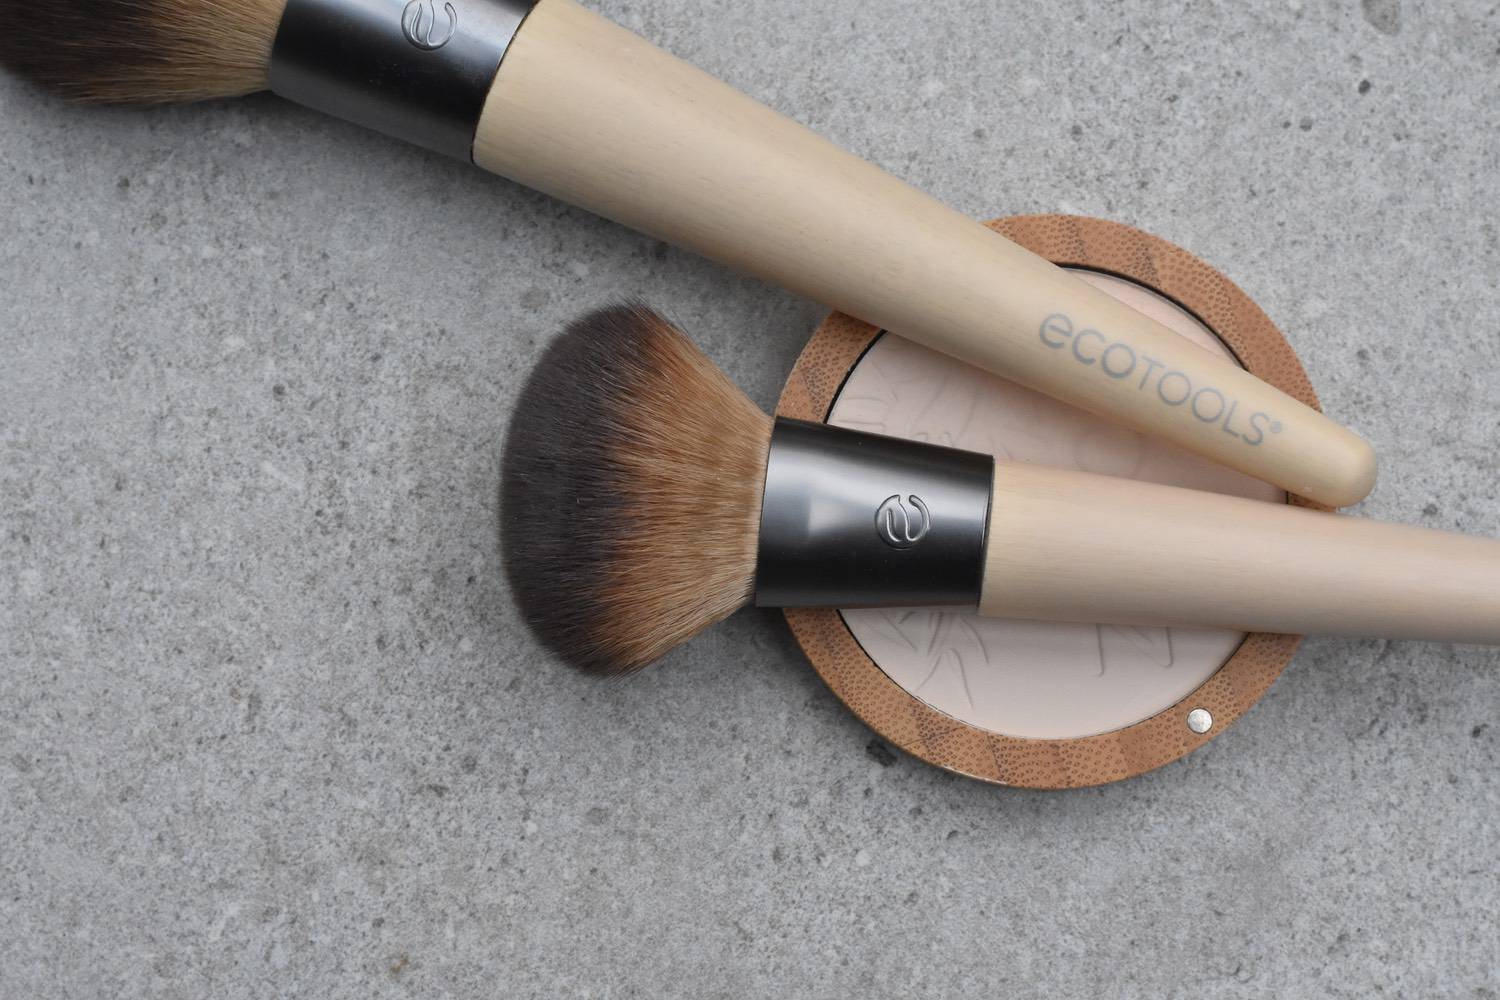 brushes - I left the only make-up brushes I had in a hotel bathroom eons ago. And, to be honest, it's been a struggle to find anything that I'm 100% happy are a genuinely eco choice. These Eco Tools were the best I'd found. But they're not perfect. The brushes themselves are made from bamboo and recycled materials. But they do come in plastic packaging, which I gather is for hygiene reasons. They are lovely quality though, so I can't see I'll be needed any others for a long time.Since buying these, I've discovered Zao do very similar brushes. Same deal, bamboo handles, vegan-friendly synthetic tops. But they are not sold in plastic packaging.